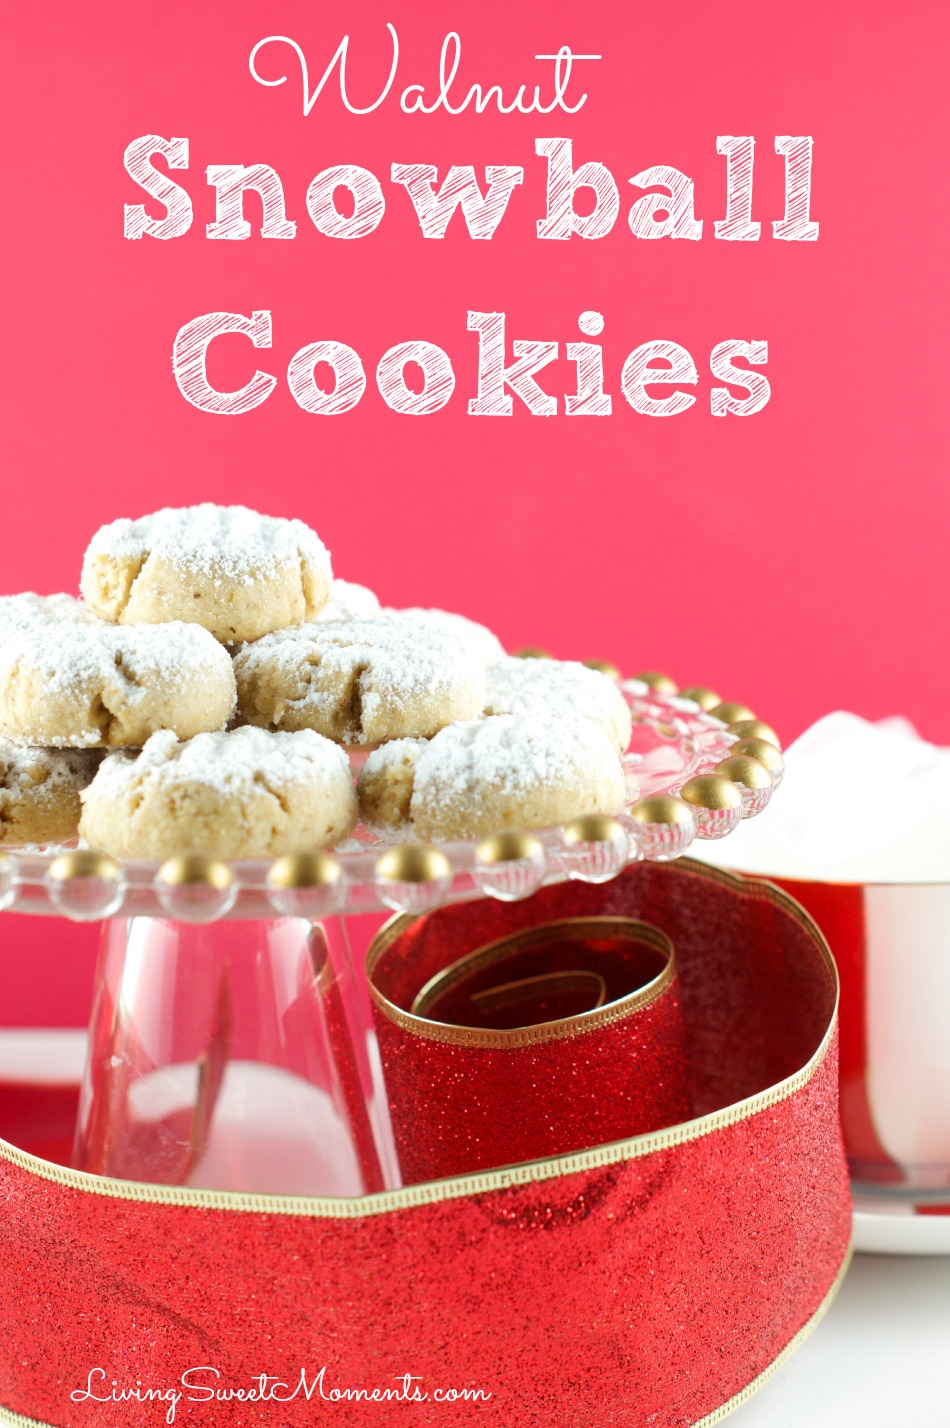 walnut-snowball-cookies-recipe